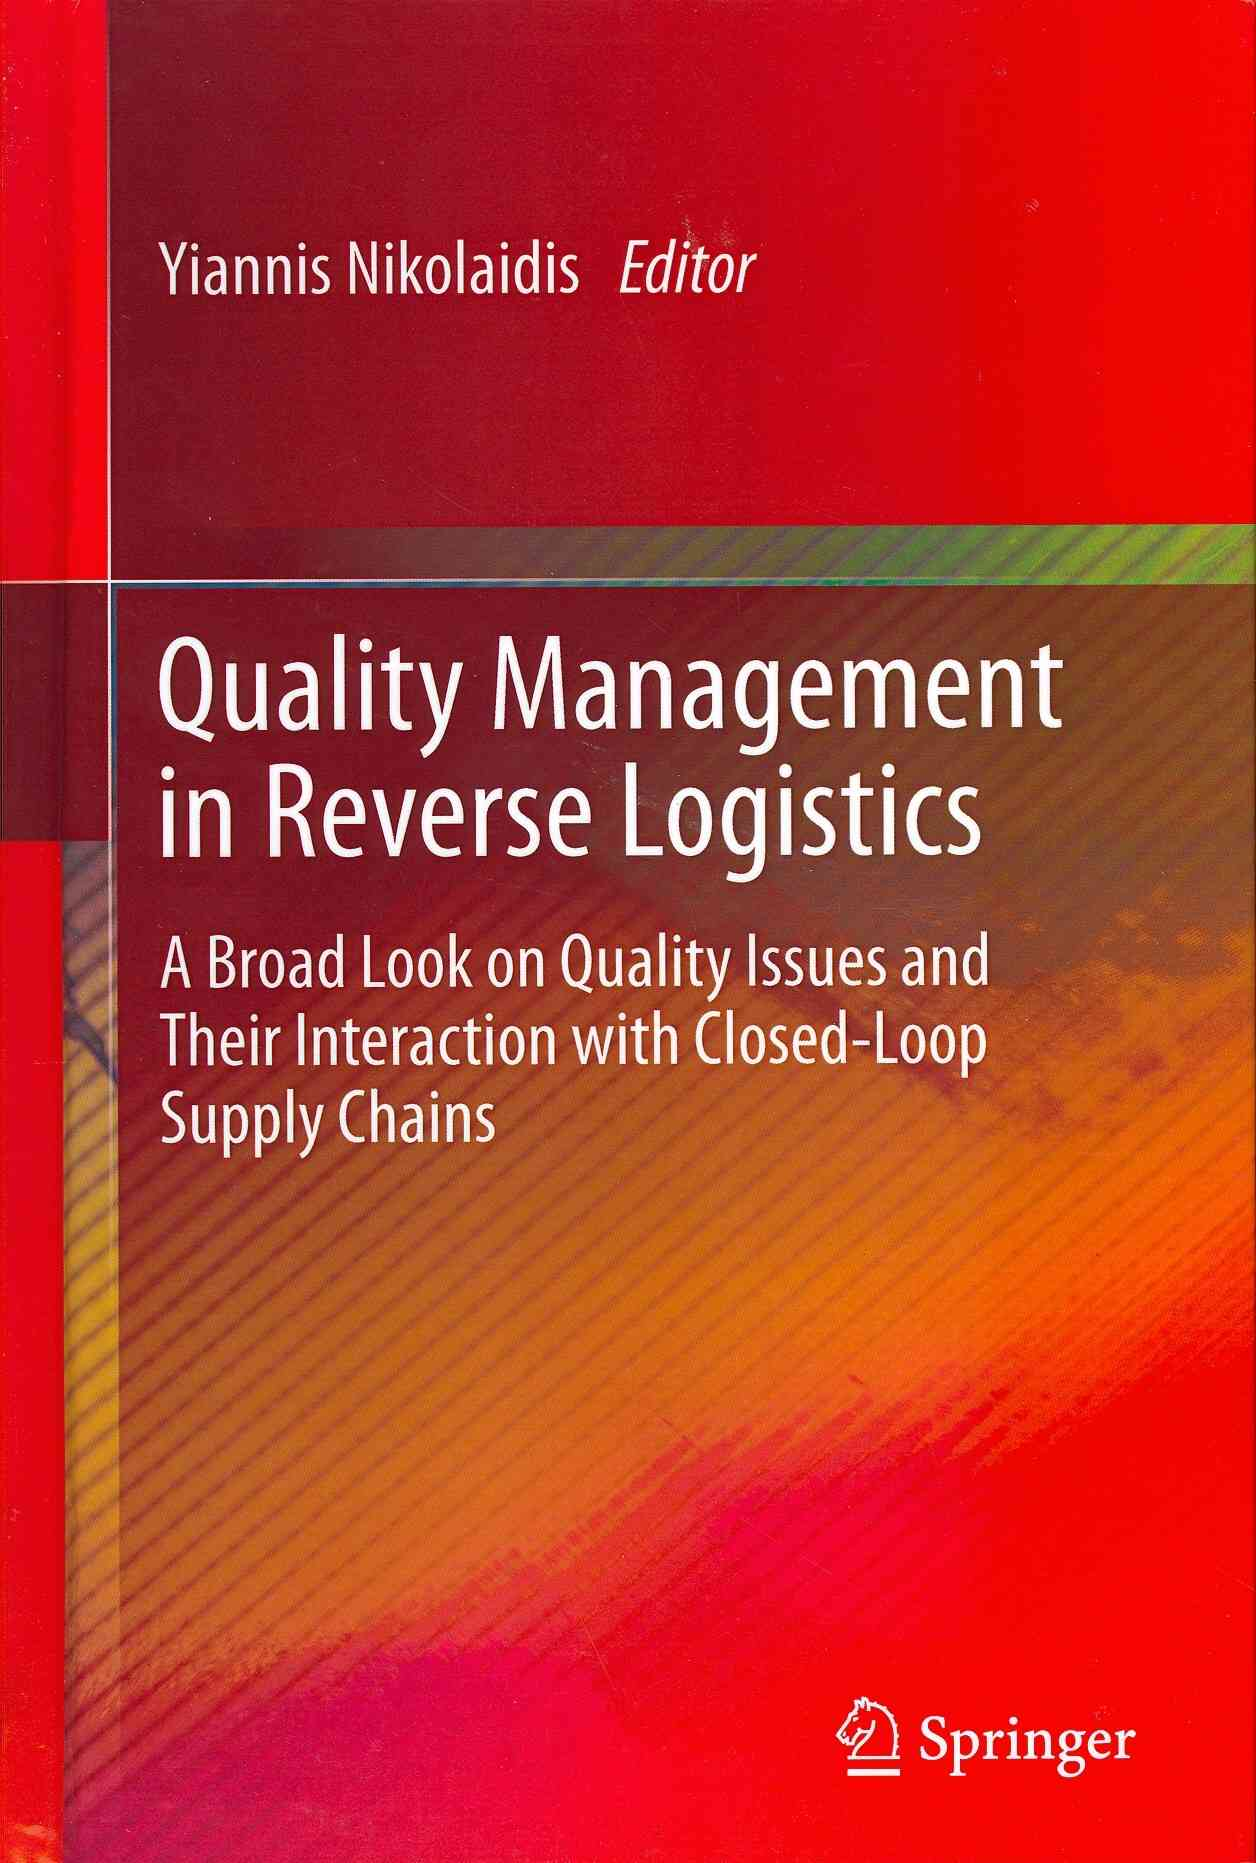 Quality Management in Reverse Logistics By Nikolaidis, Yiannis (EDT)